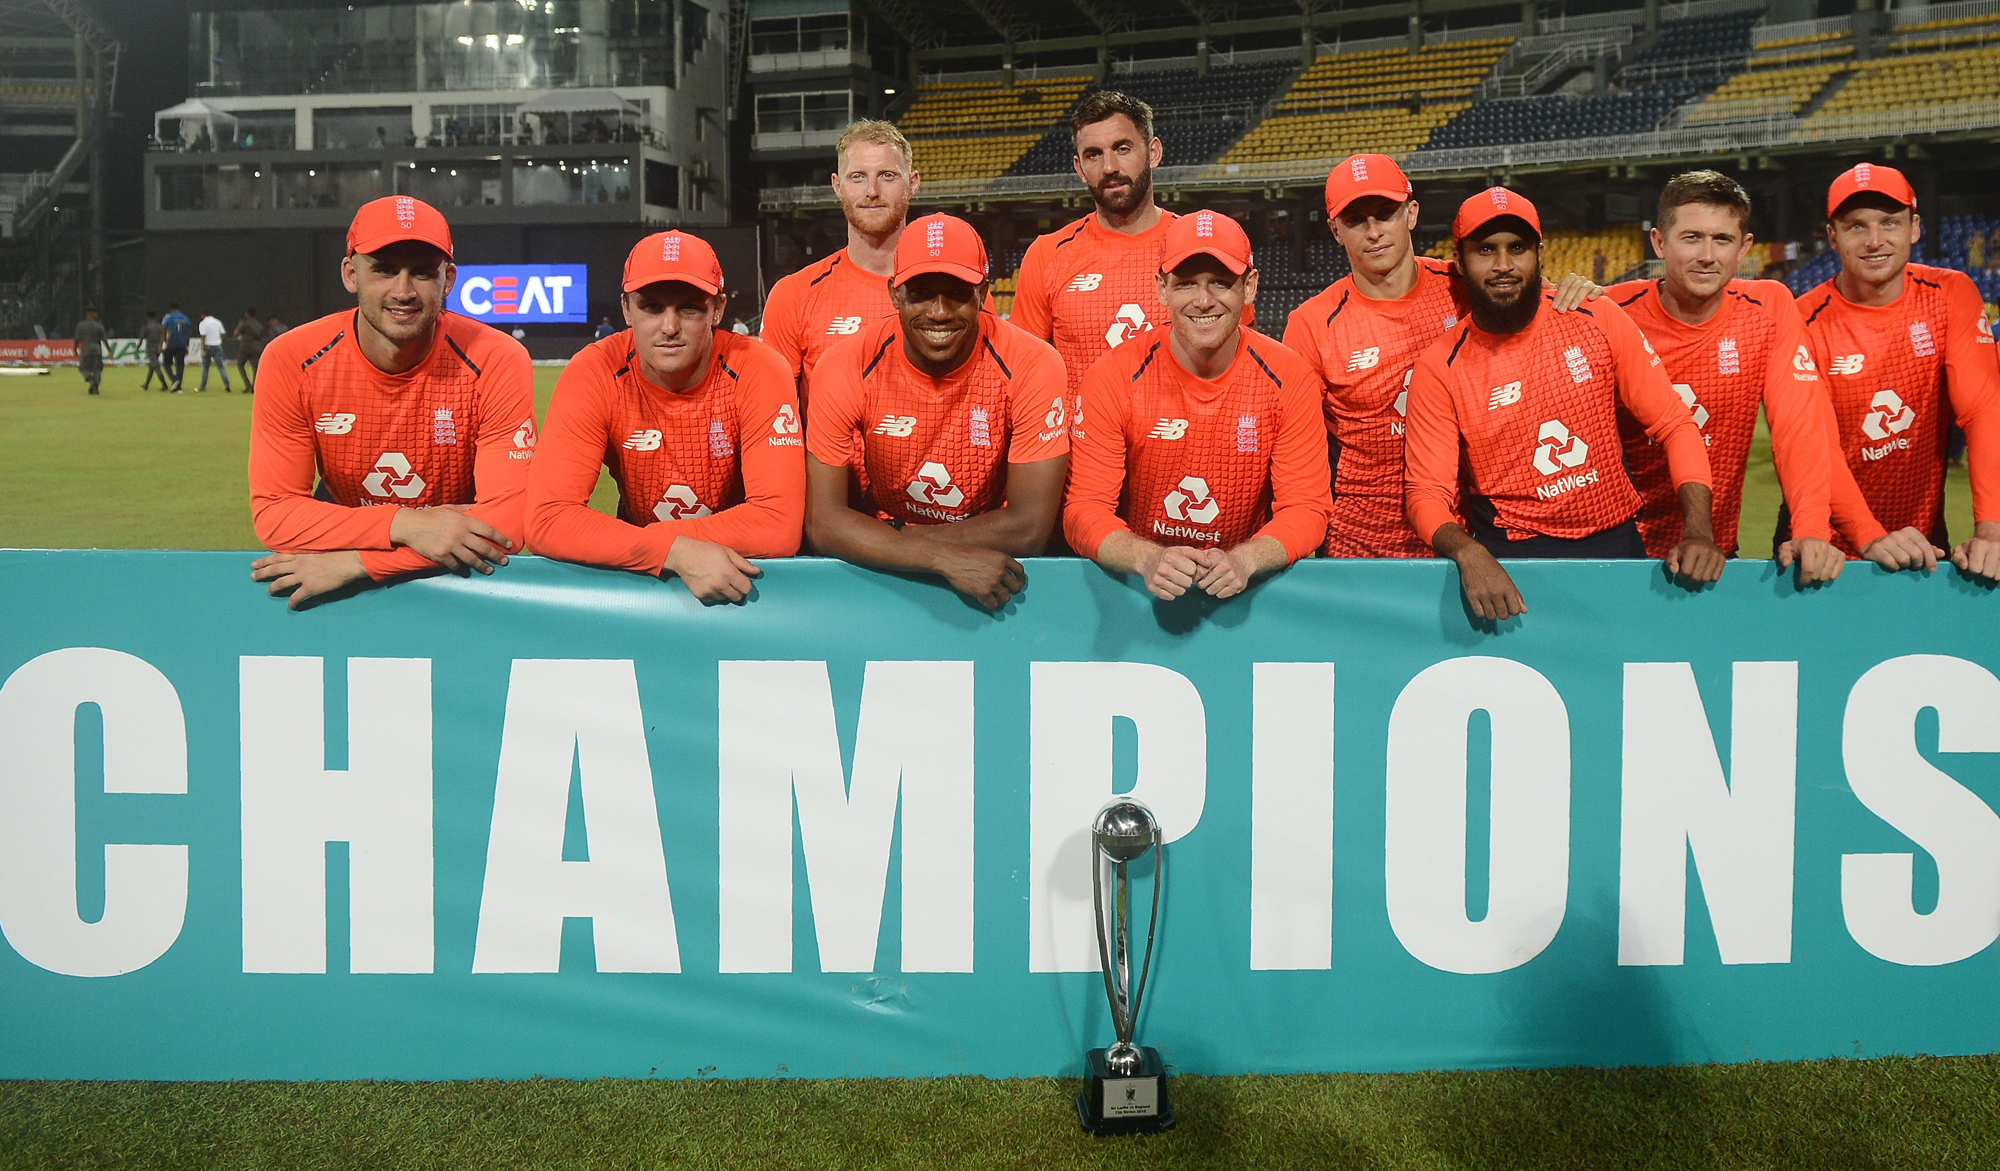 England cricket captain Eoin Morgan (C) and team poses with the winners trophy after winning the Twenty20 International cricket match between Sri Lanka and England at the R Peremadasa Stadium in Colombo on October 27, 2018. (Photo by ISHARA S. KODIKARA /